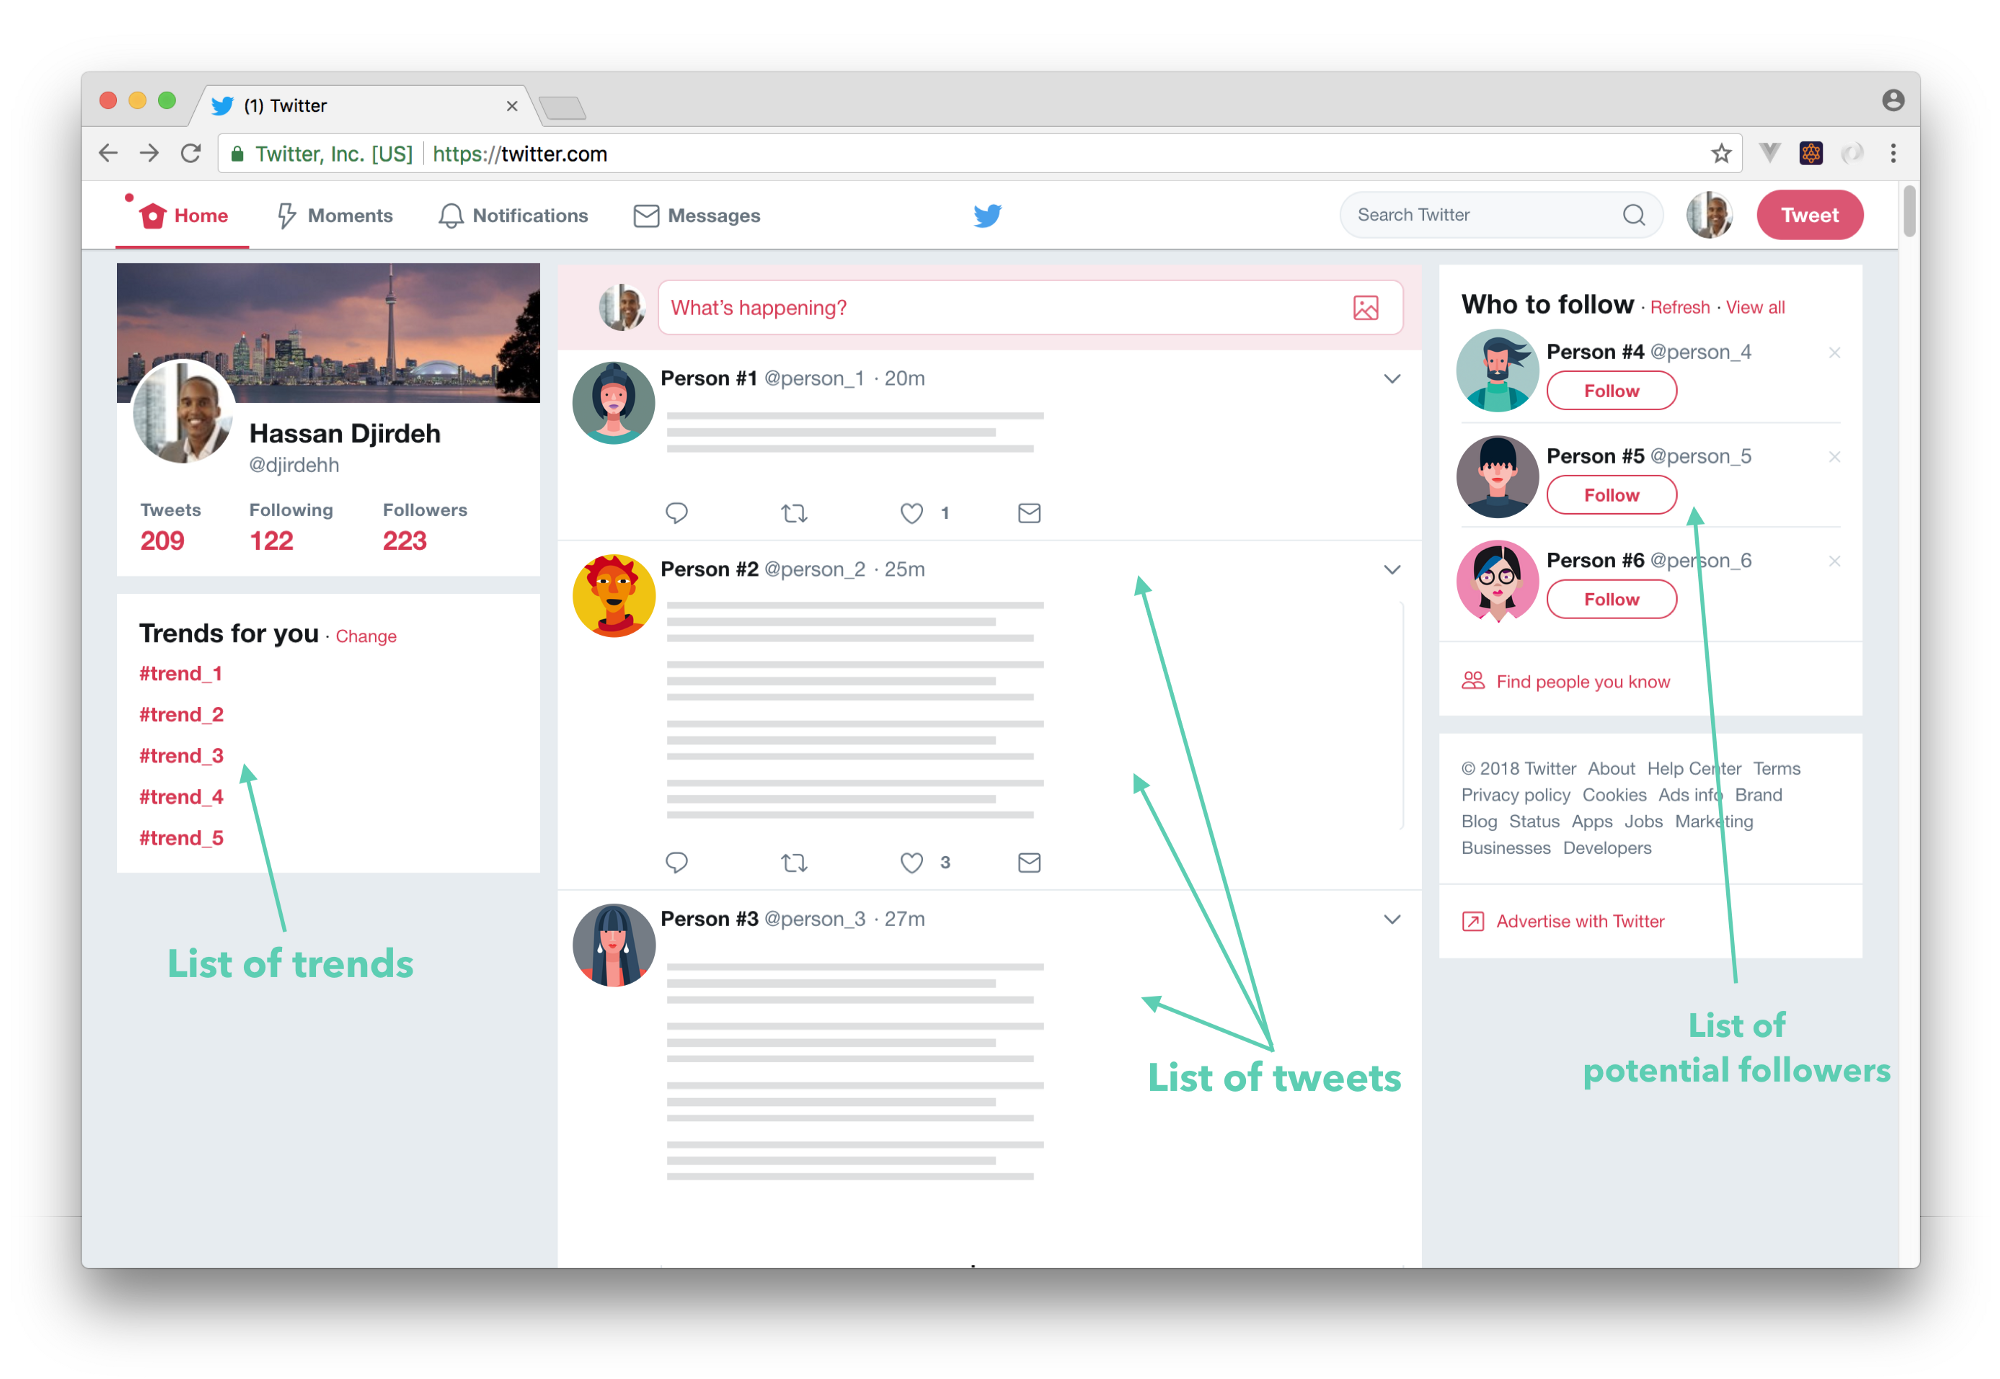 An Introduction To Dynamic List Rendering In Vuejs Similar Galleries Computer Diagram Labeled Parts Of A On The Homepage Weve Become Accustomed Seeing Trends Tweets Potential Followers And So Content Displayed